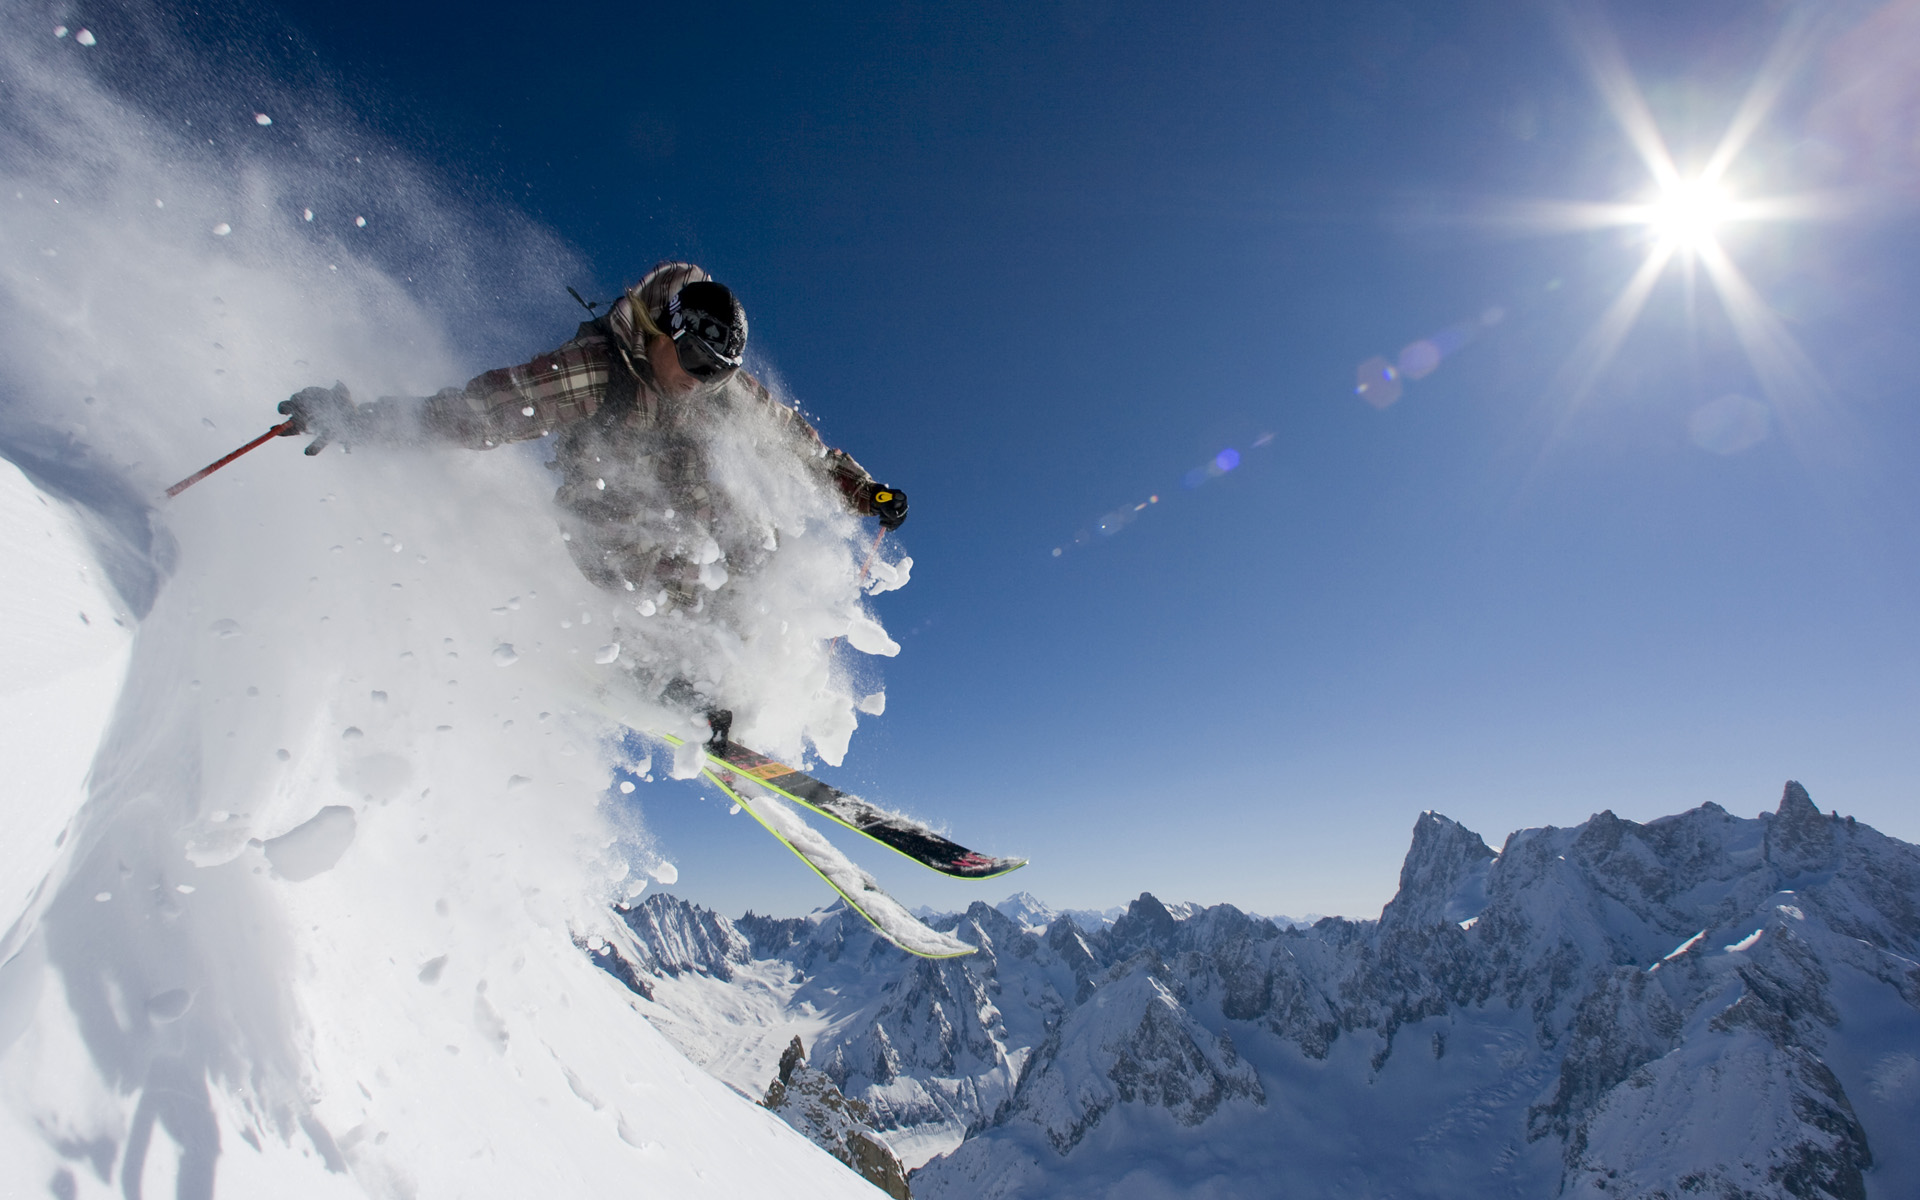 Extreme Sports Wallpapers: [47+] Extreme Sports Wallpaper On WallpaperSafari